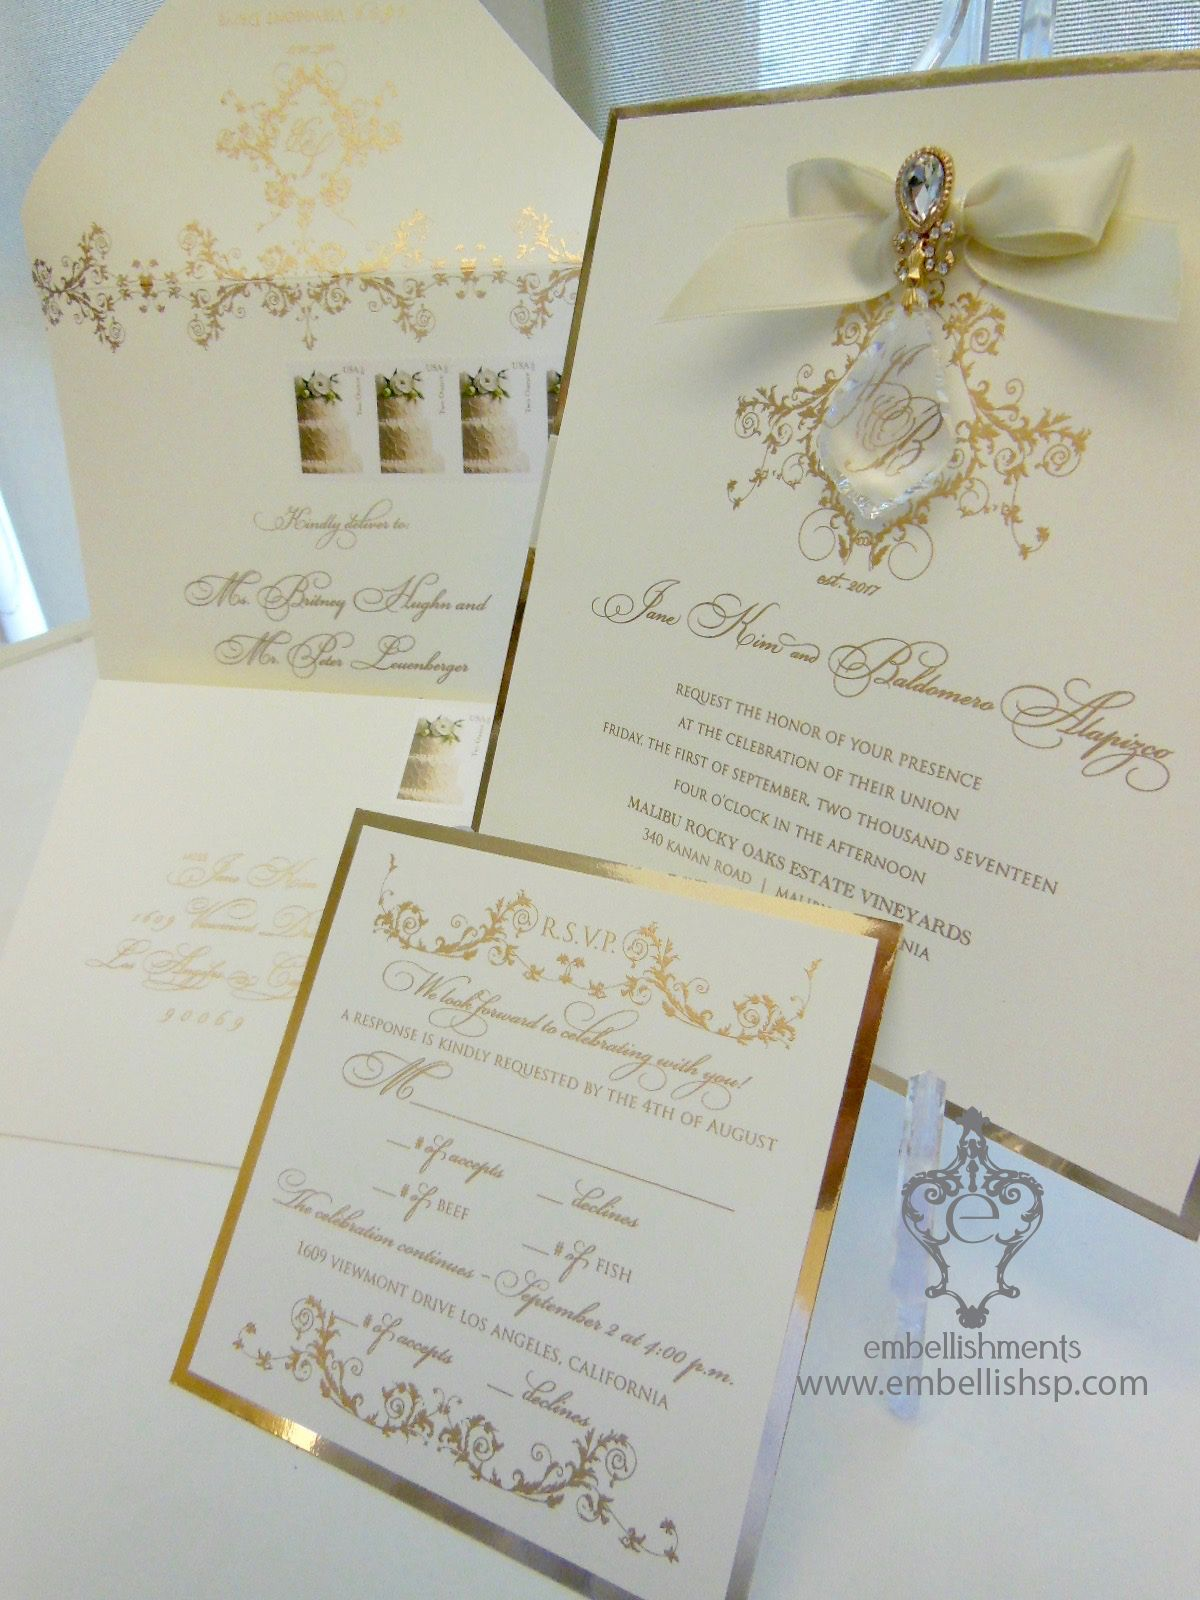 Versailles ivory and gold hanging crystal wedding invitation xo ...